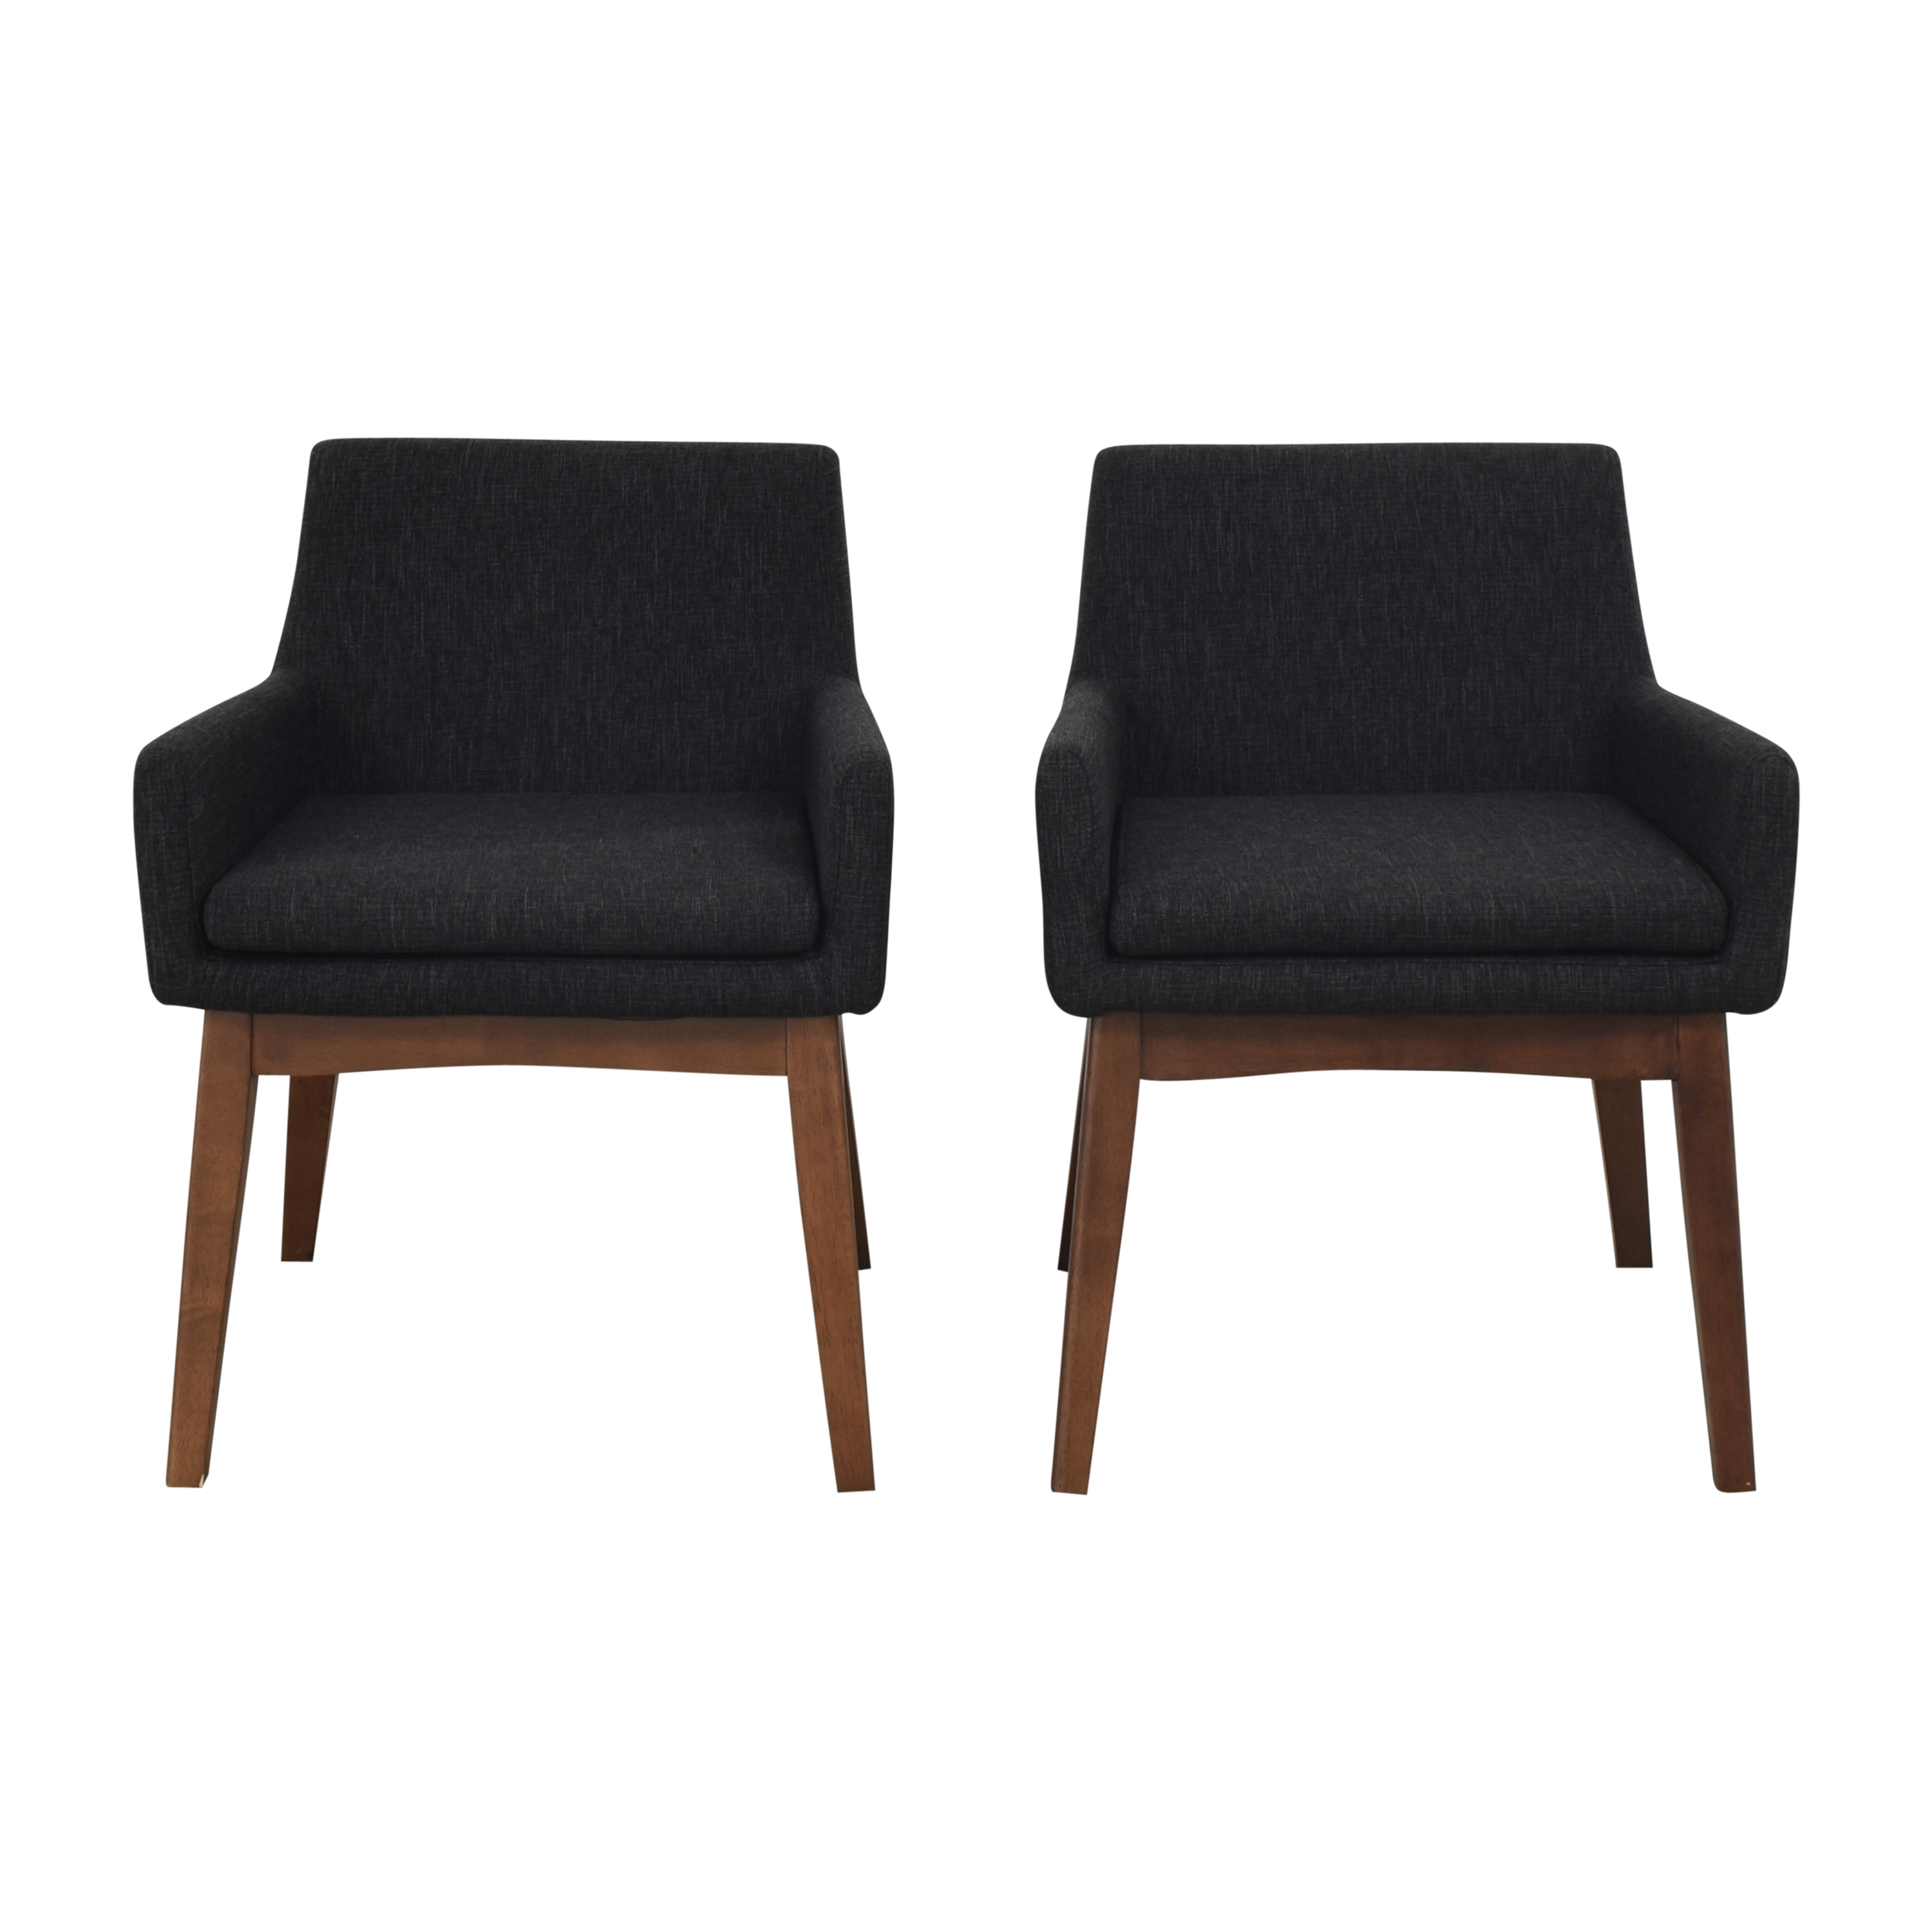 buy Article Article Chanel Dining Arm Chairs online